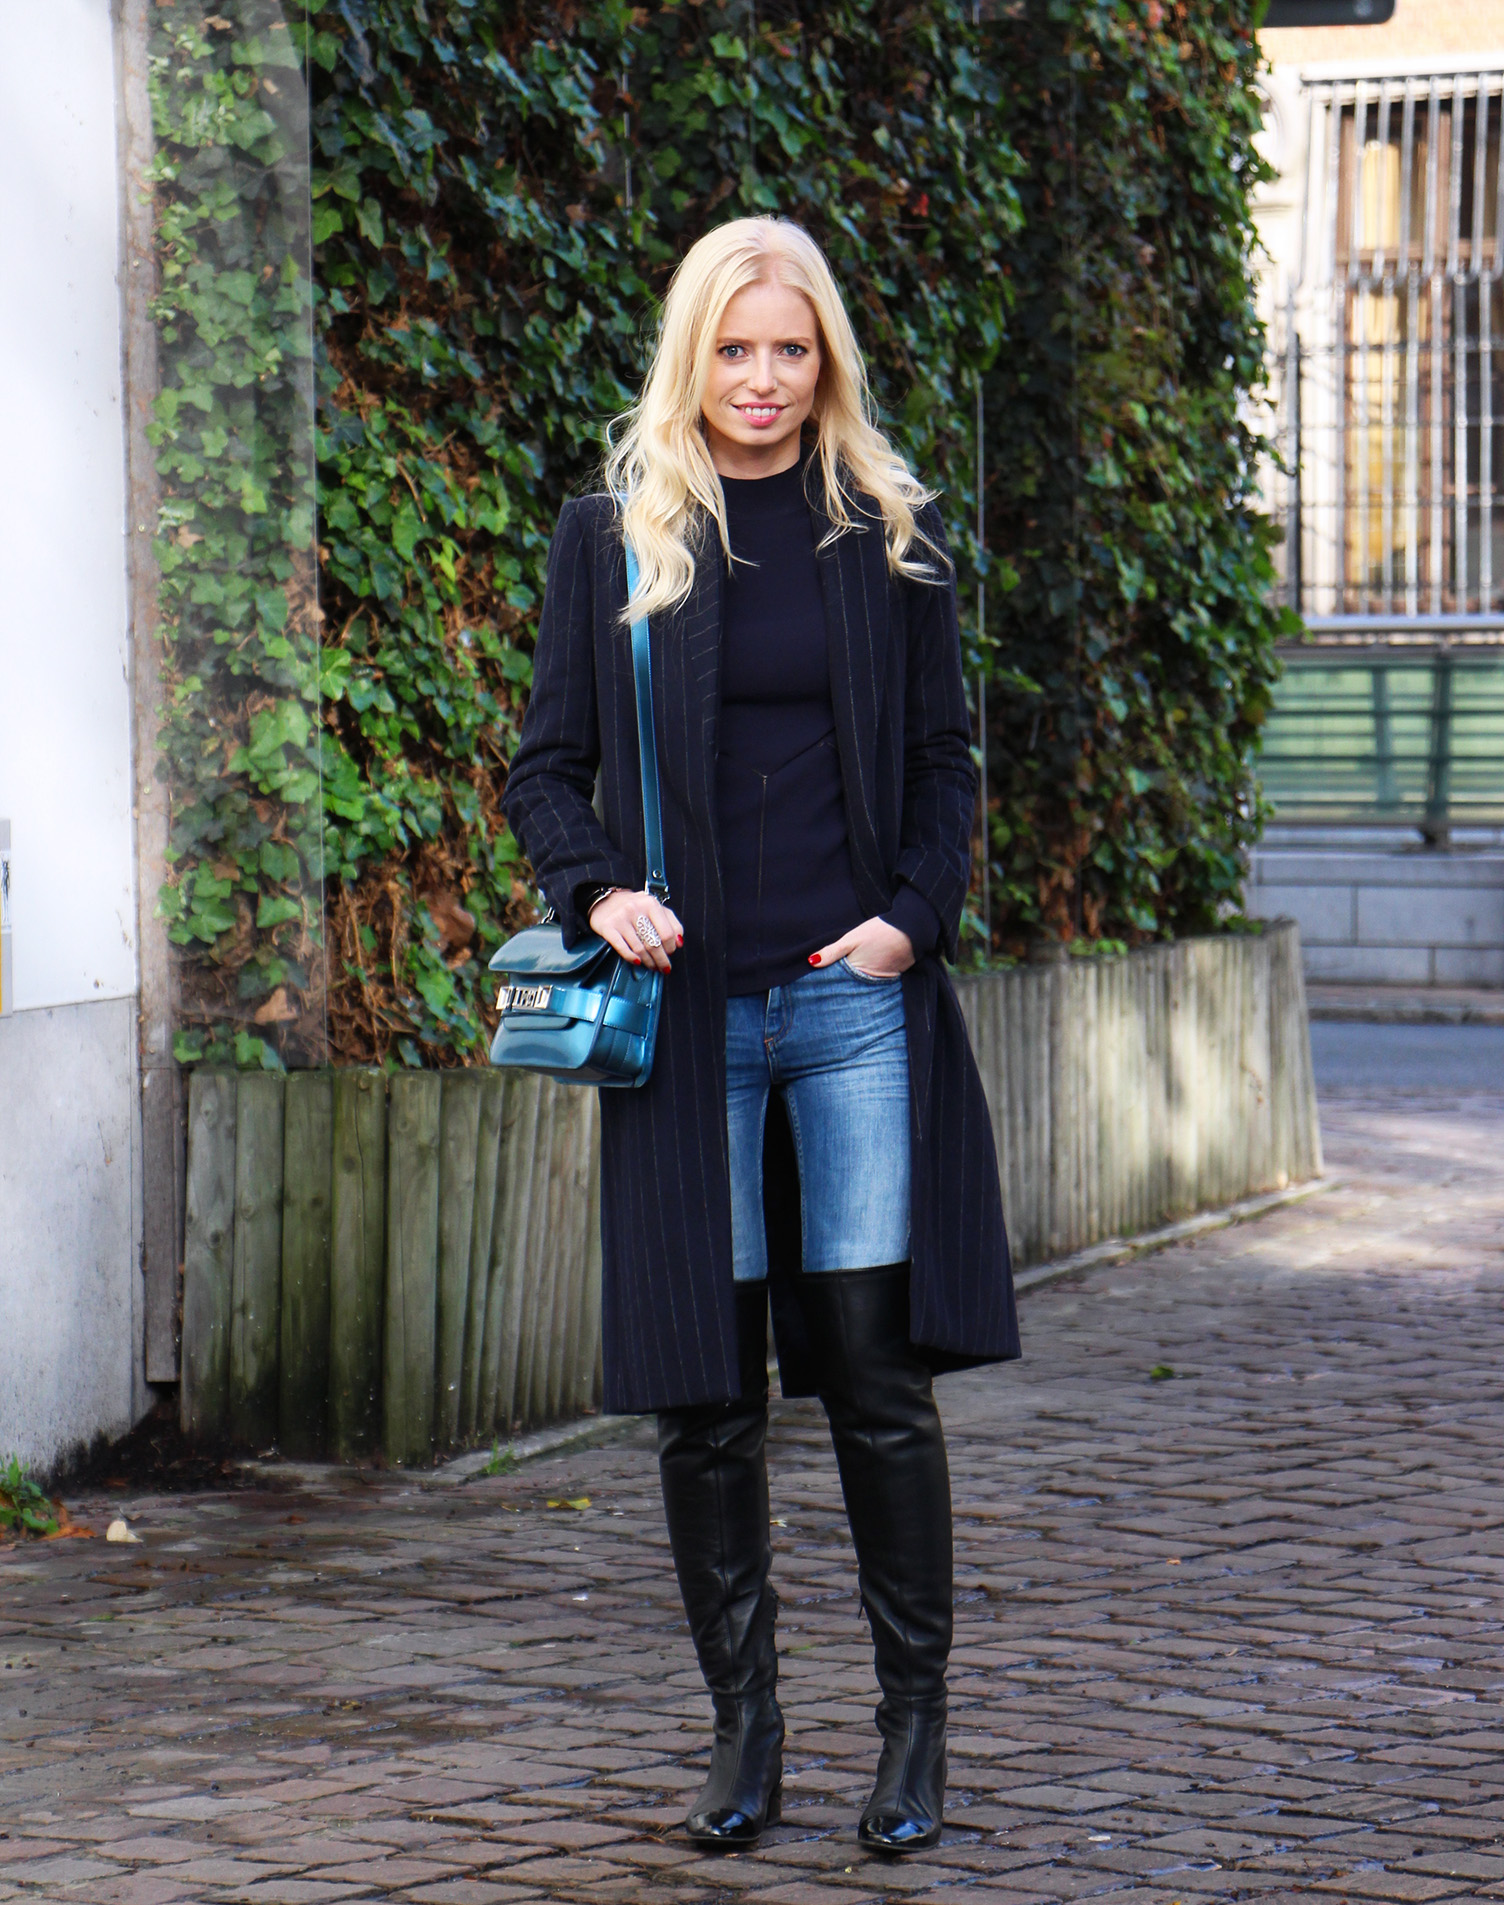 outfit25okt1